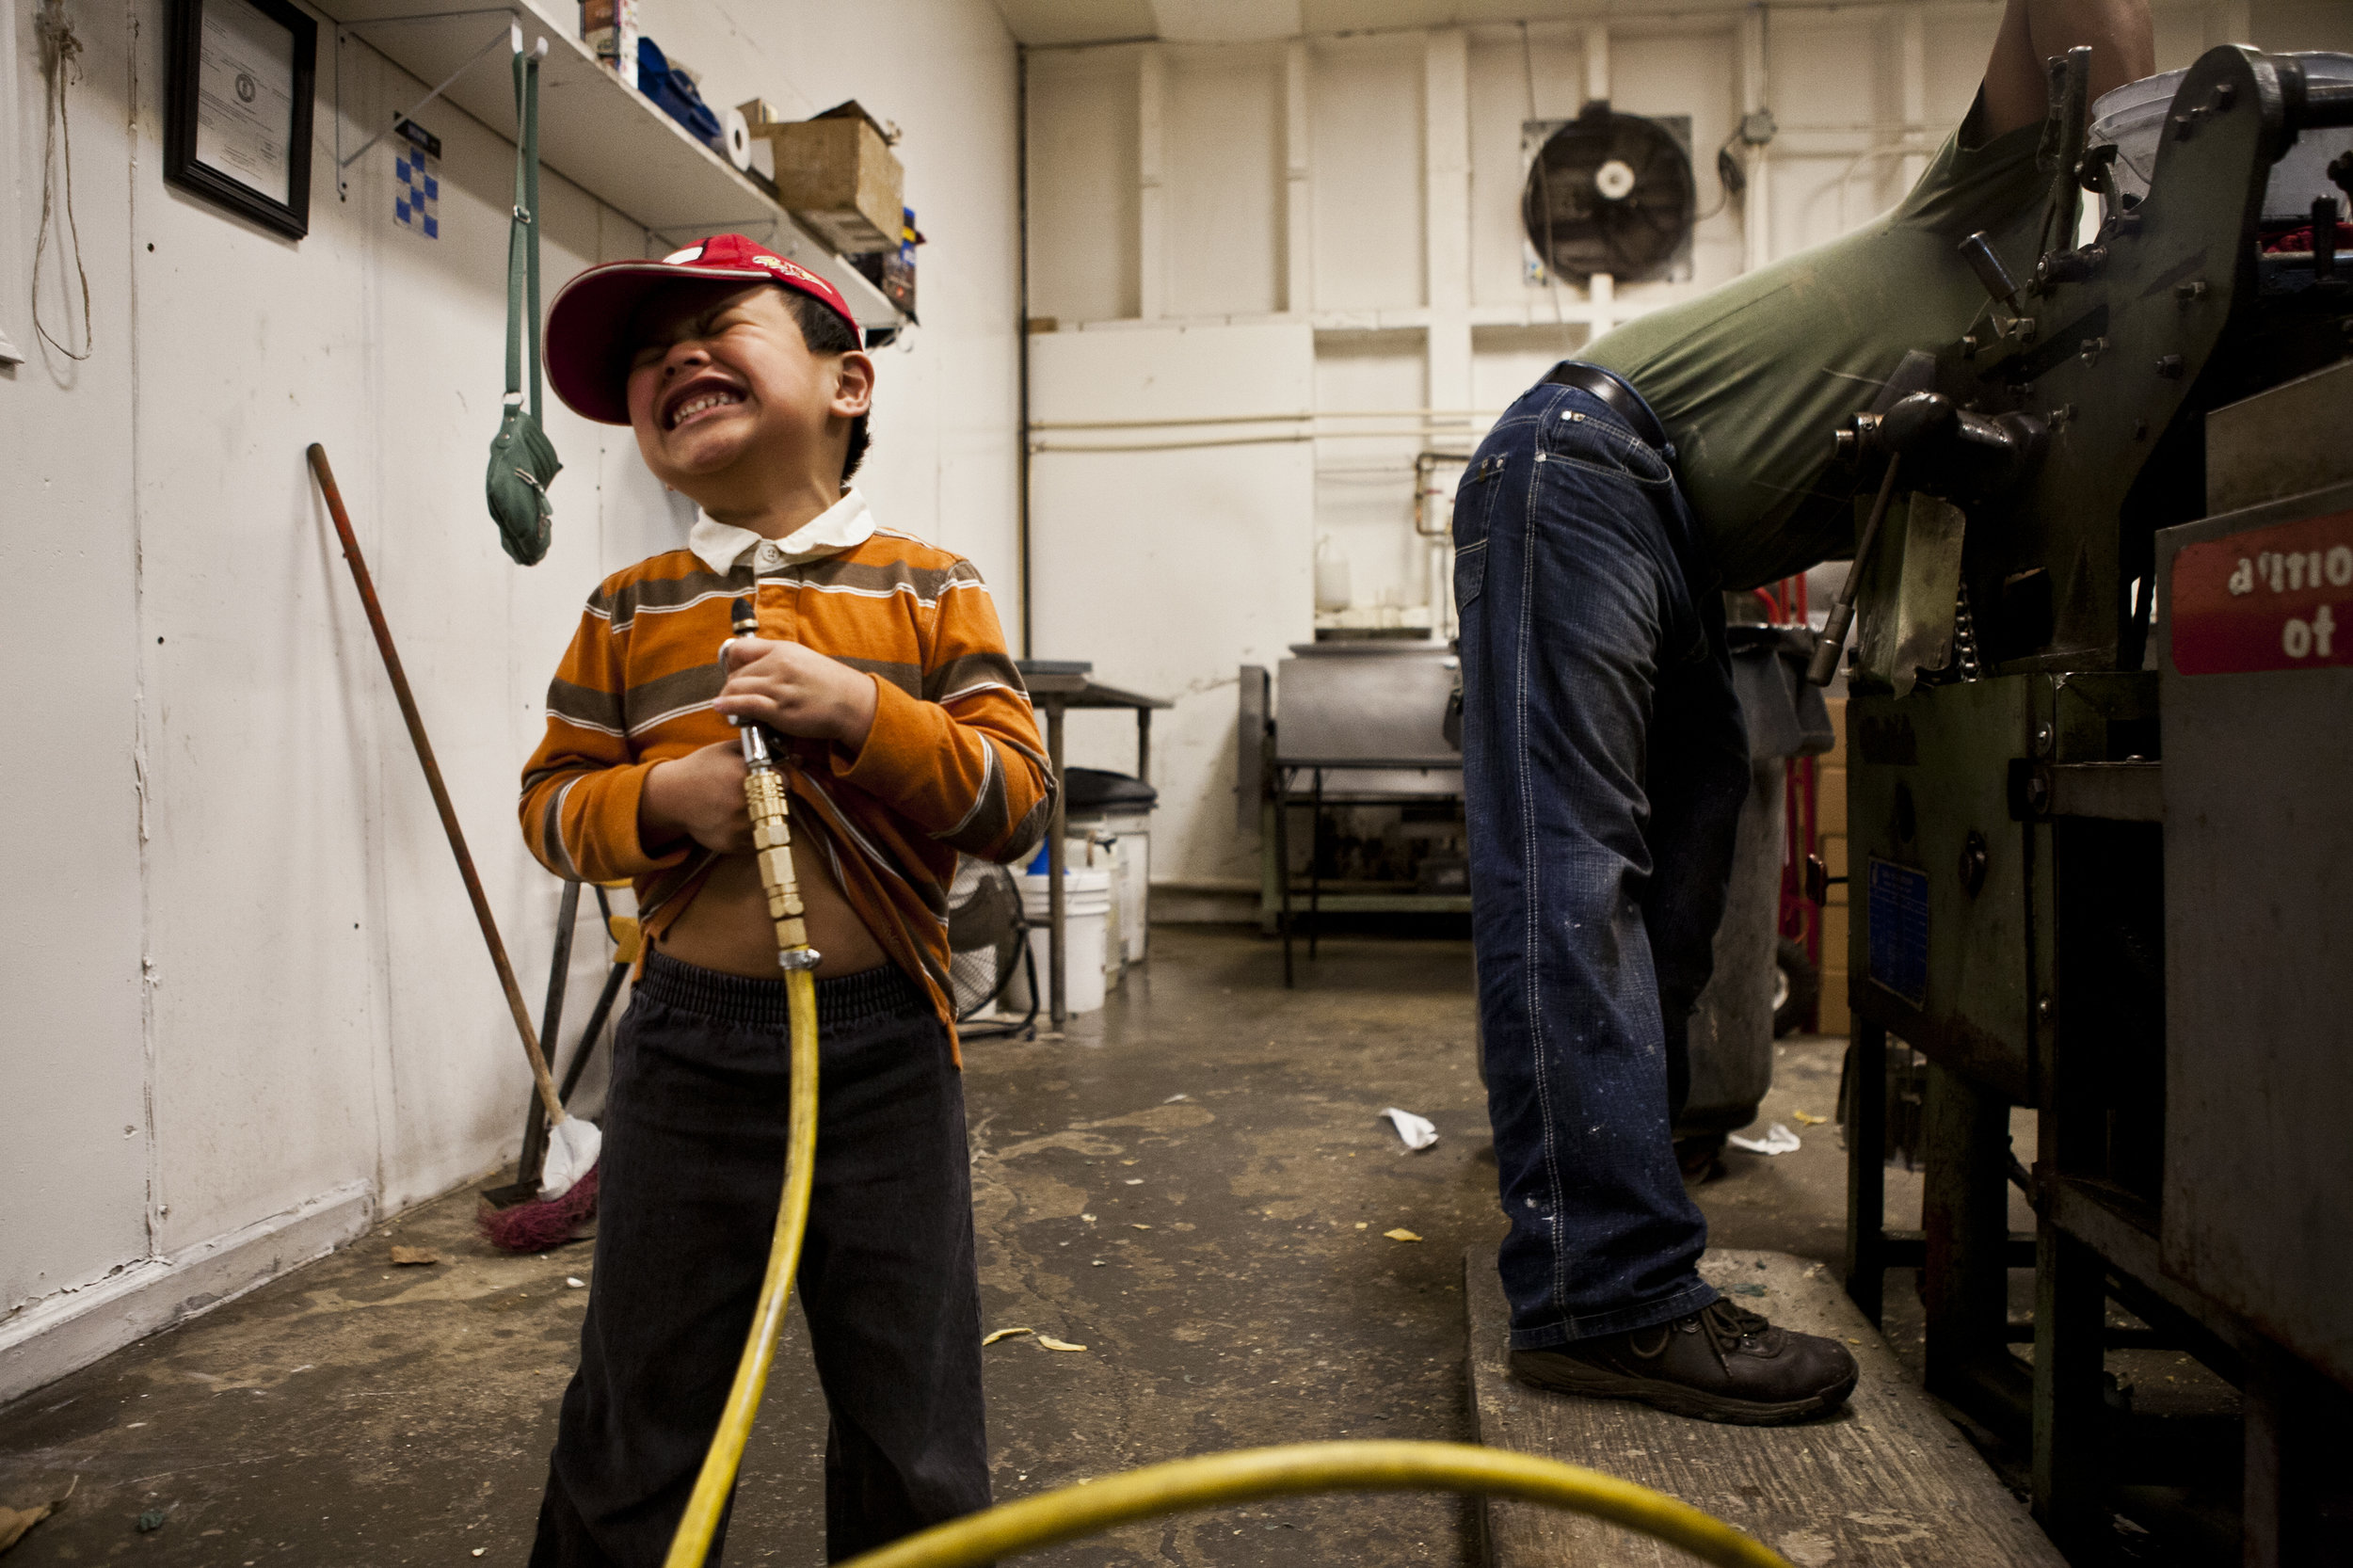 """While his father Roberto Valdez scrambles to clean the families tortilla shop, or """"tortilleria"""" in Spanish, at the end of a long work day Barzik Valdez, 4, amuses himself with an air compressor that is used to blow off dough from the machinery. Owner and operator of Tortillerias Provincia in Bowling Green, Ky., Roberto Valdez brought his family and talent for tortilla making from Mexico in 2009 searching for a better and more prosperous future. Barzik, the youngest of Roberto's four children, attends a local pre-school and is dropped off at the shop everyday around two in the afternoon."""